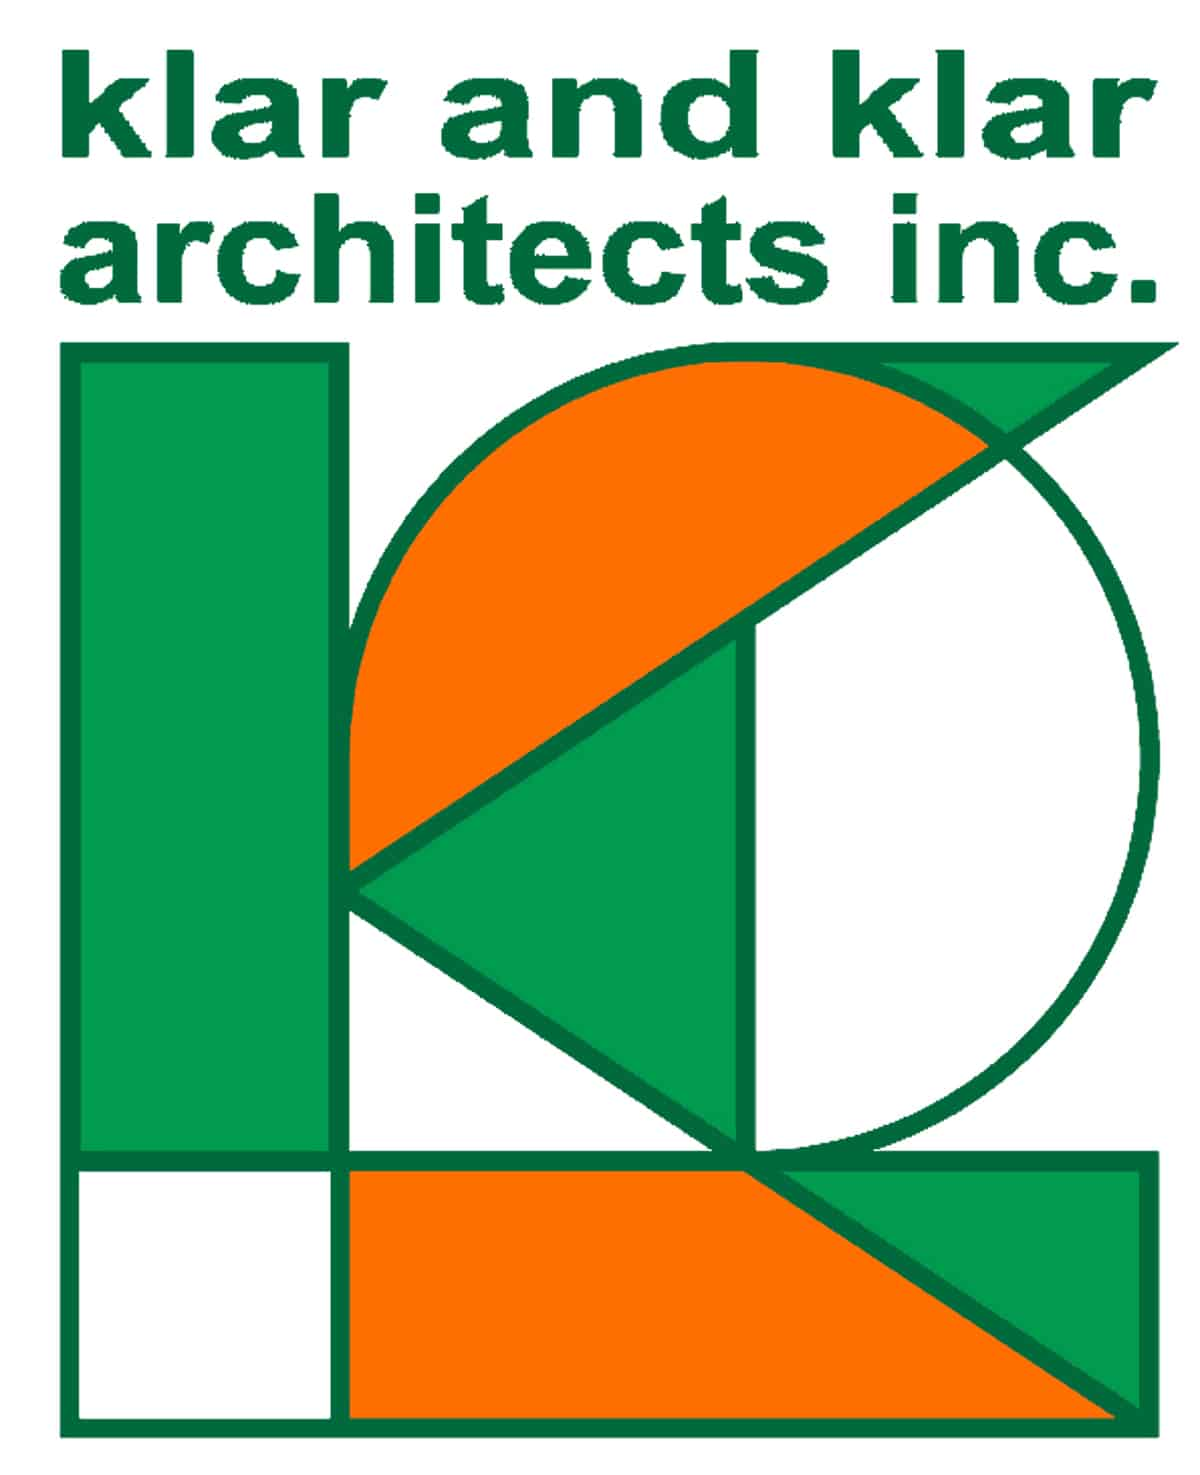 Klar and Klar Architects